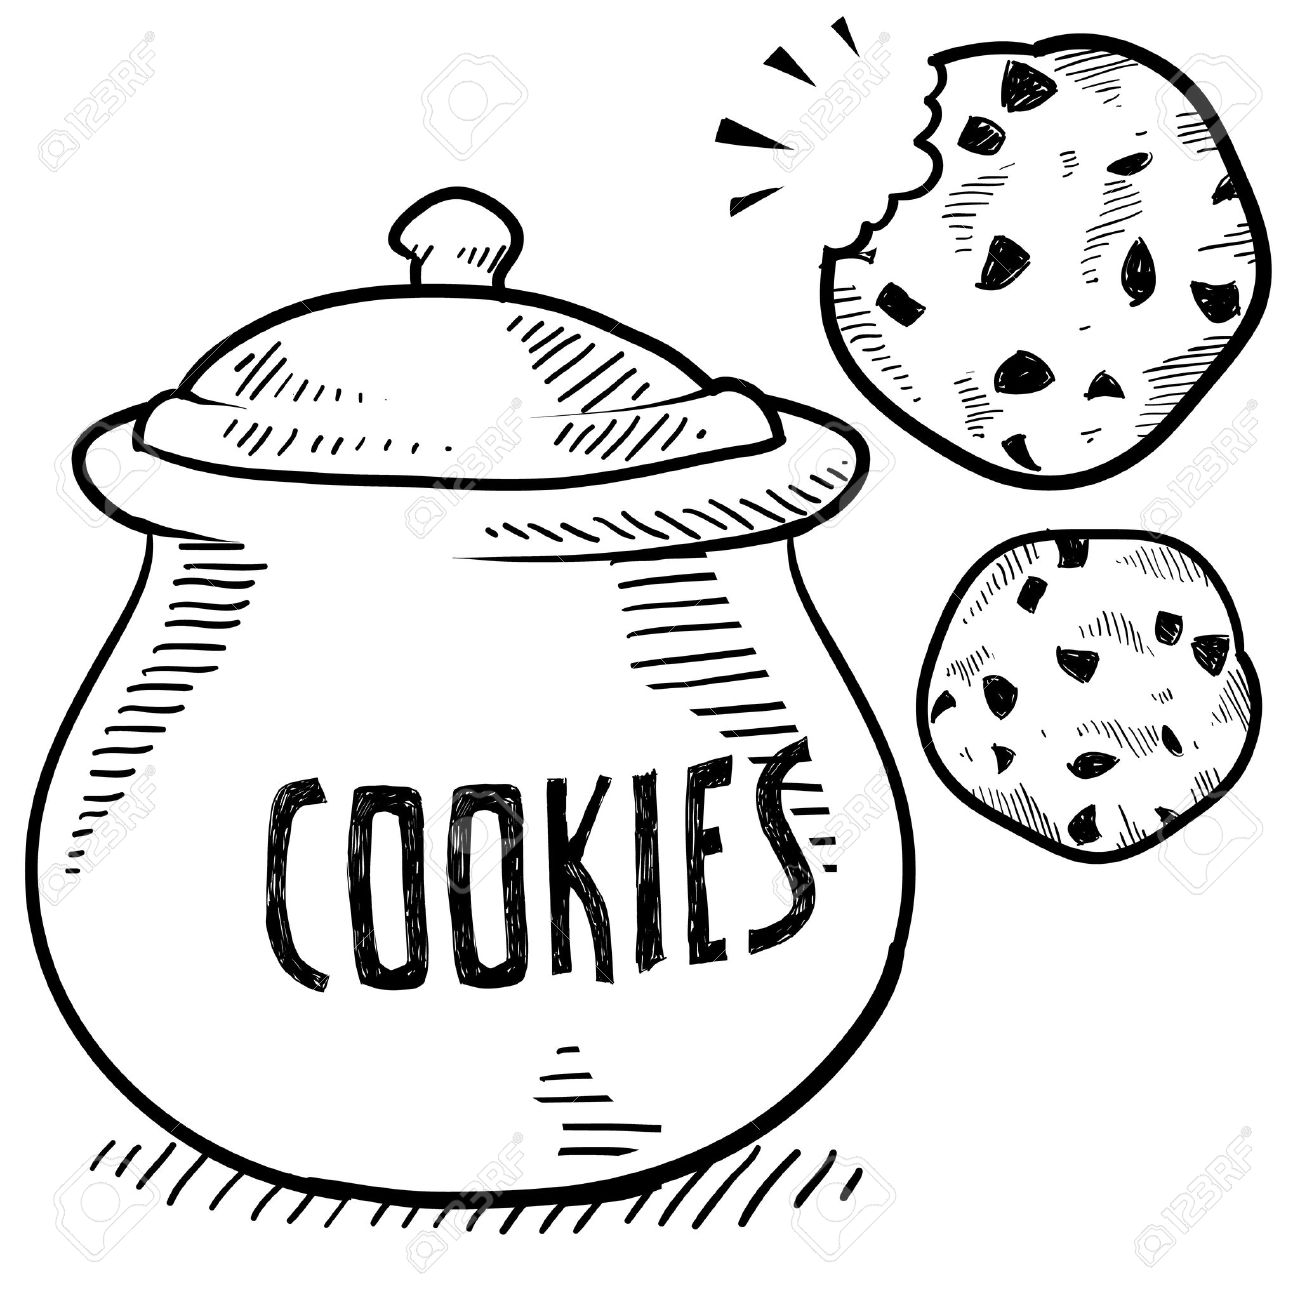 Doodle style cookie and cookie jar illustration in vector format Stock Vector - 14460785